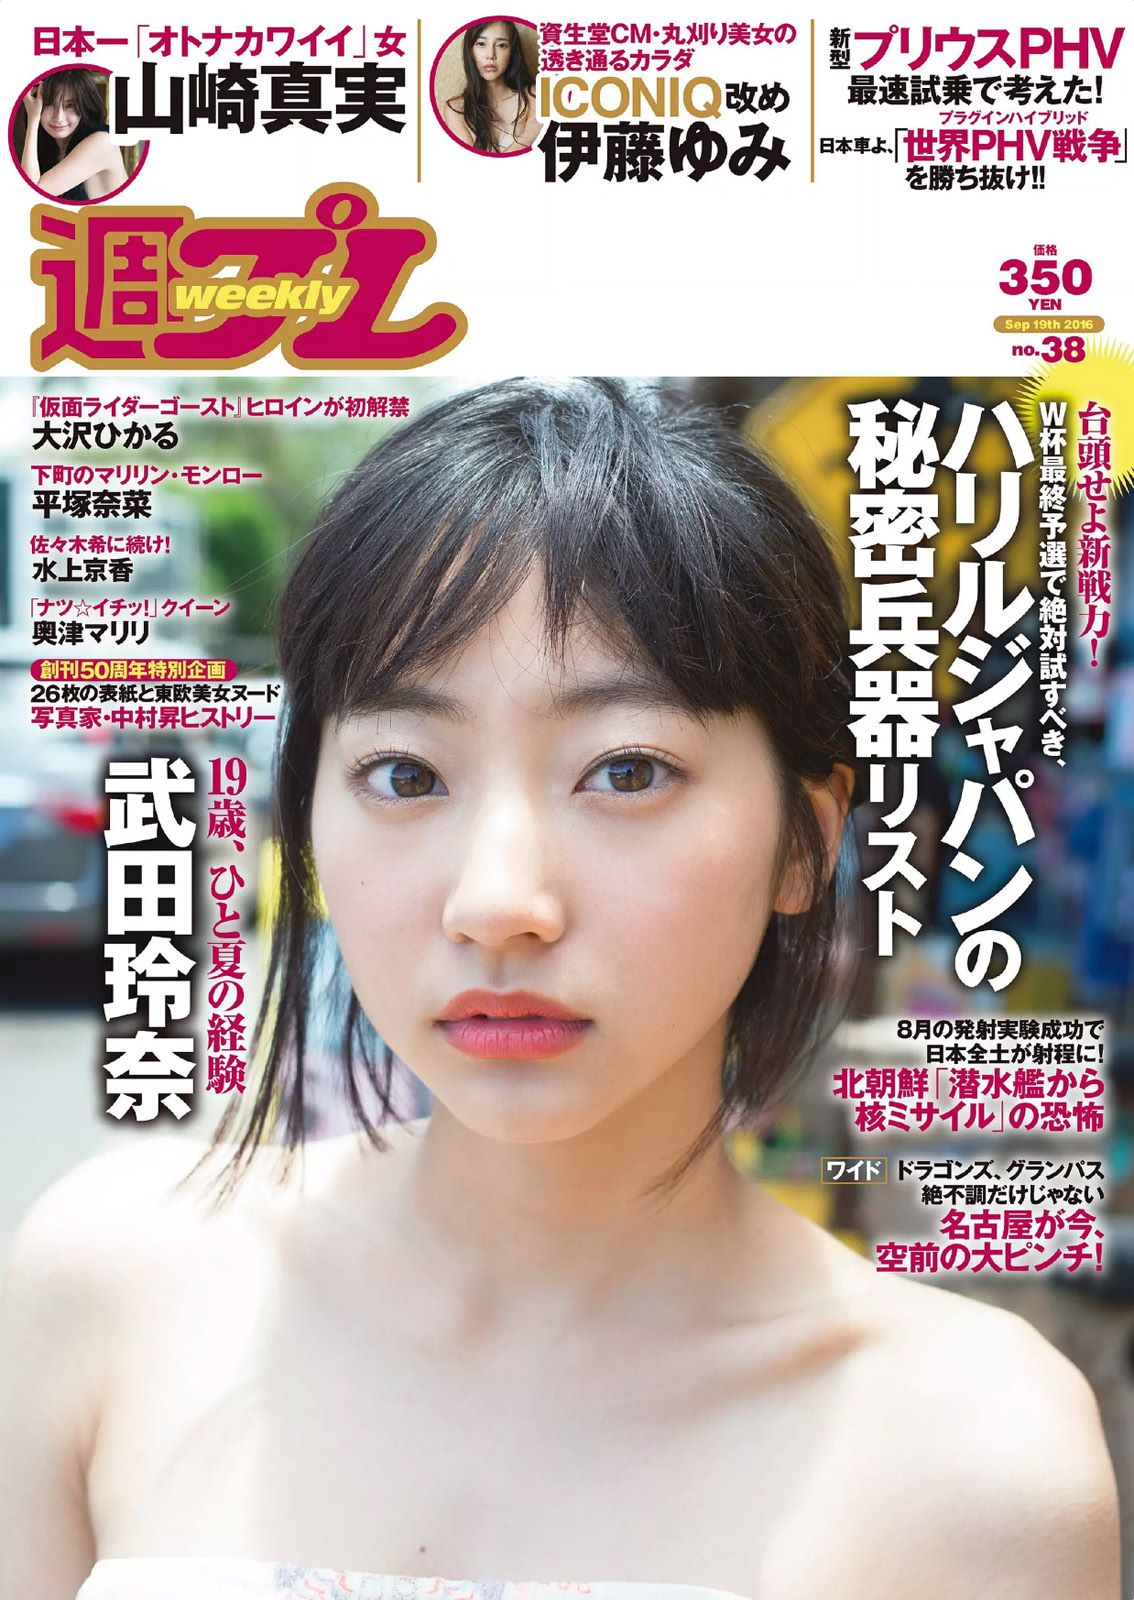 20170428.1138.3 Weekly Playboy (2016.38) 001 (JPOP.ru).jpg